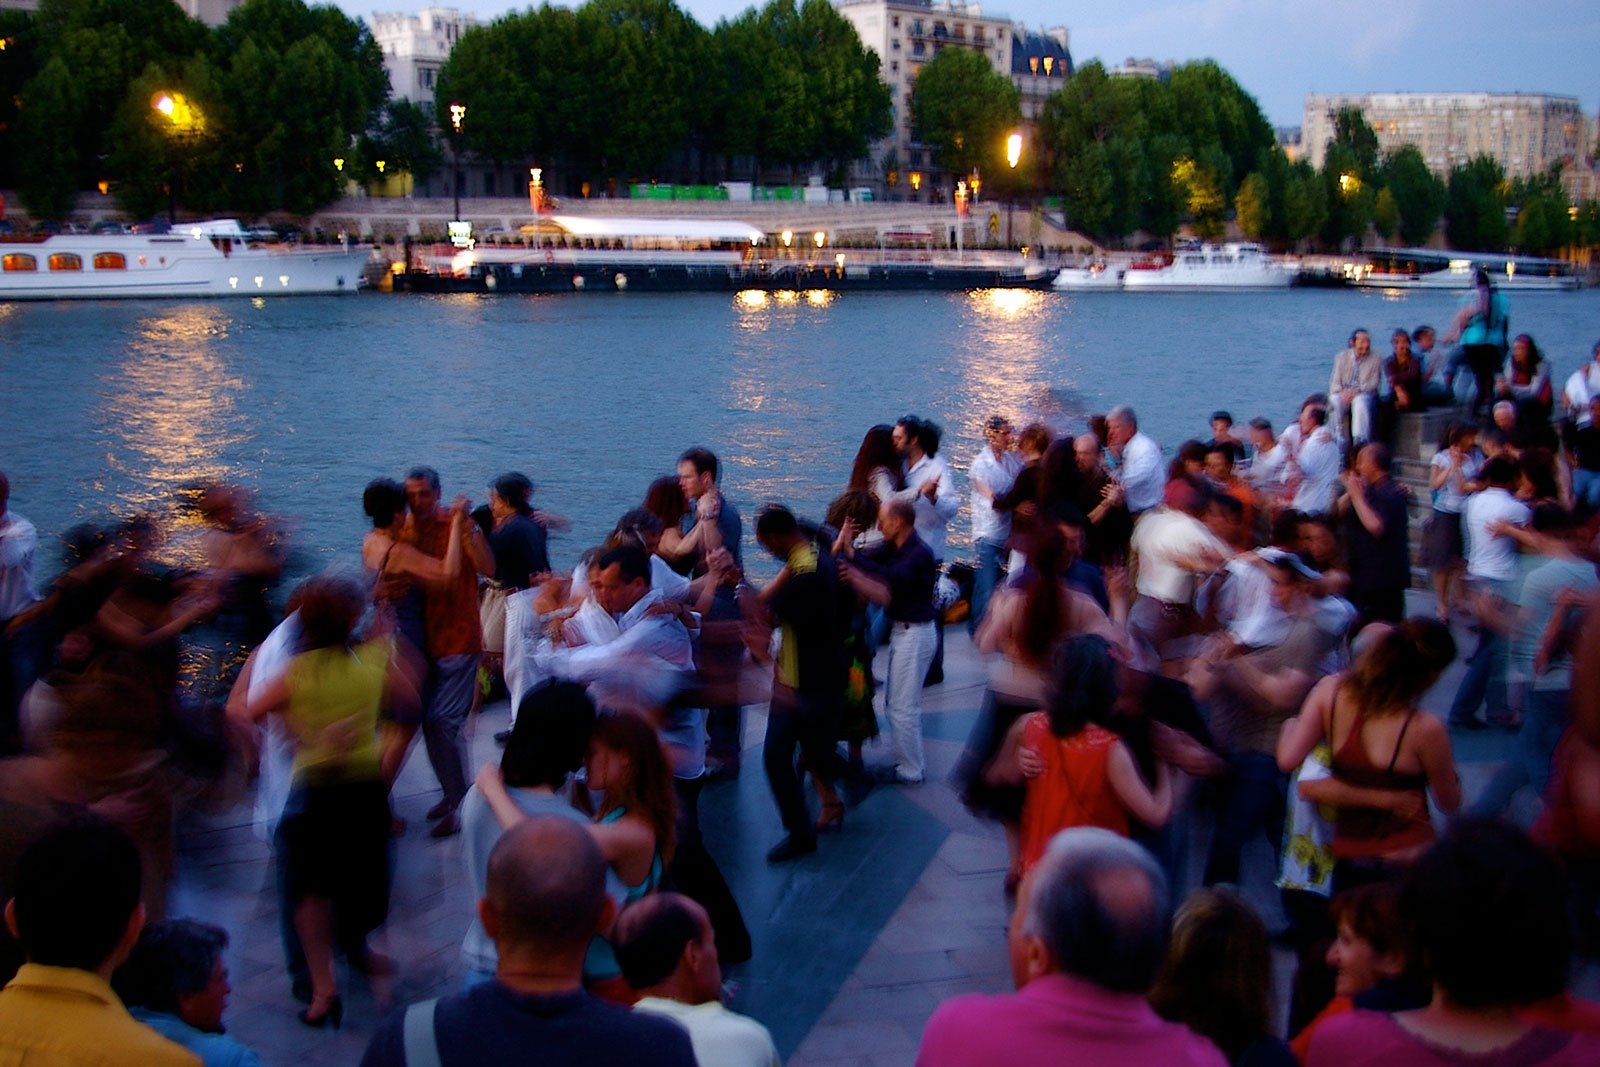 How to dance tango on the bank of the Seine in Paris